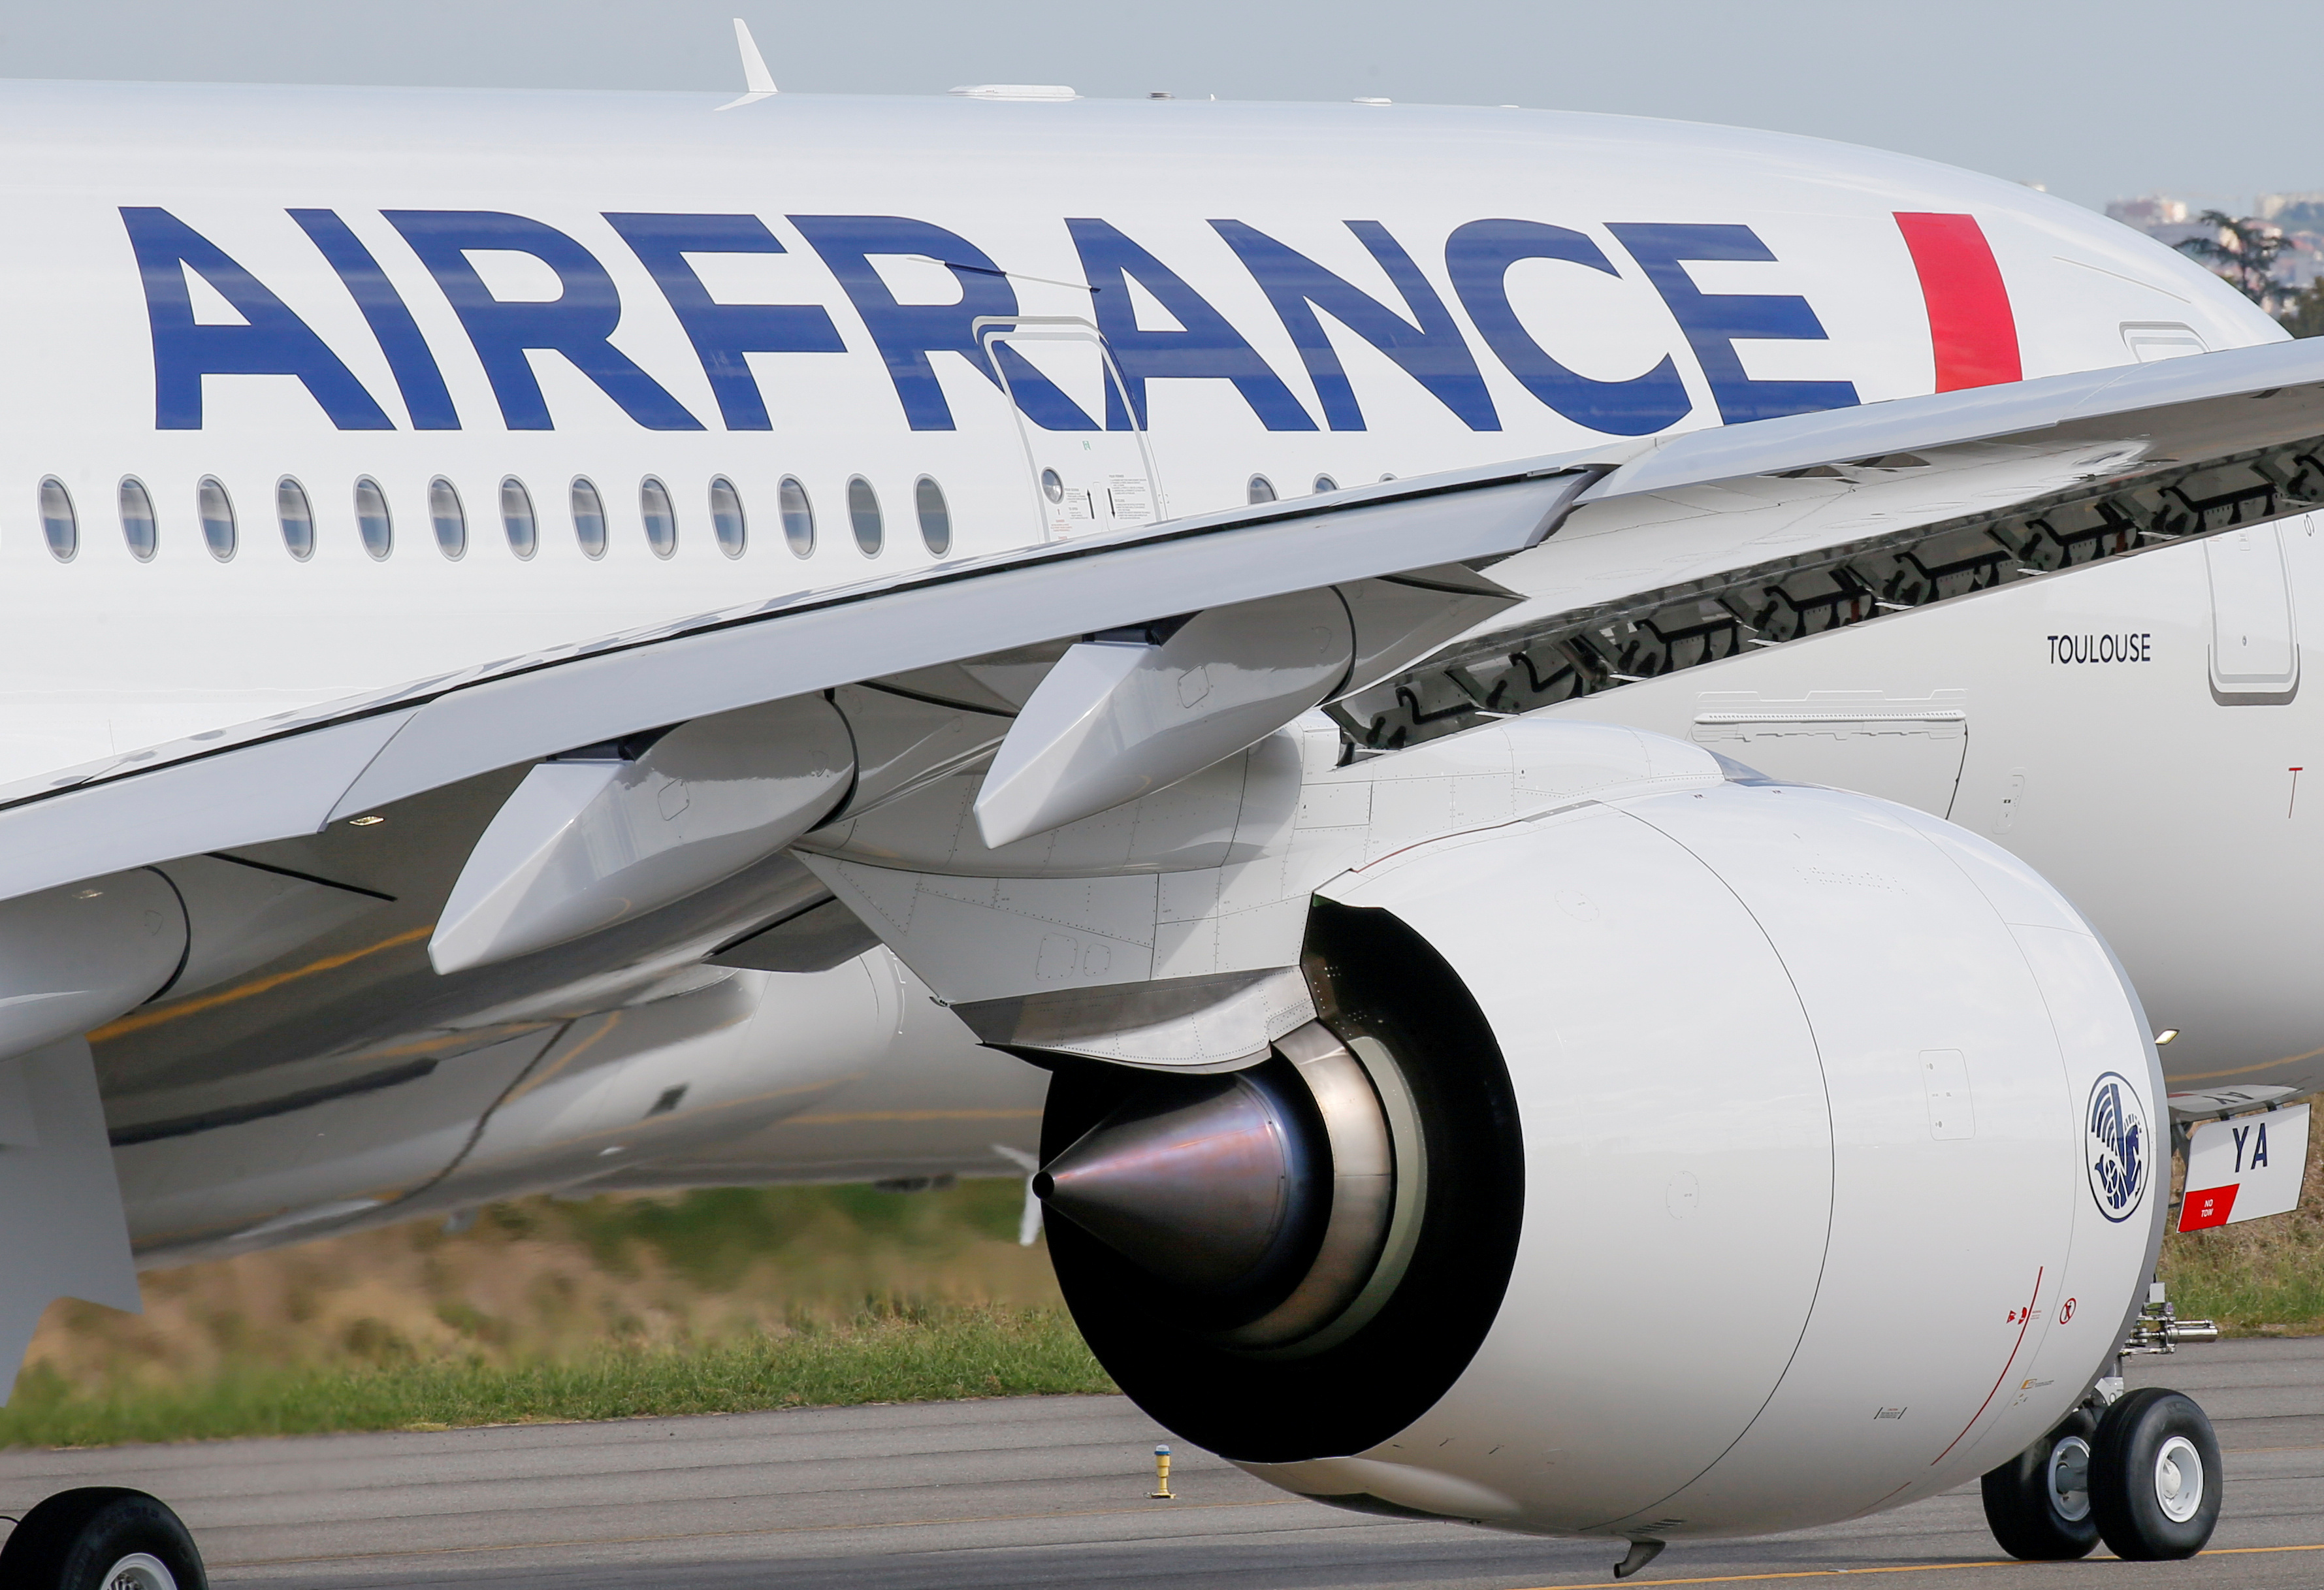 The first Air France airliner's Airbus A350 prepares to take off after a ceremony at the aircraft builder's headquarters in Colomiers near Toulouse, France, September 27, 2019. REUTERS/Regis Duvignau